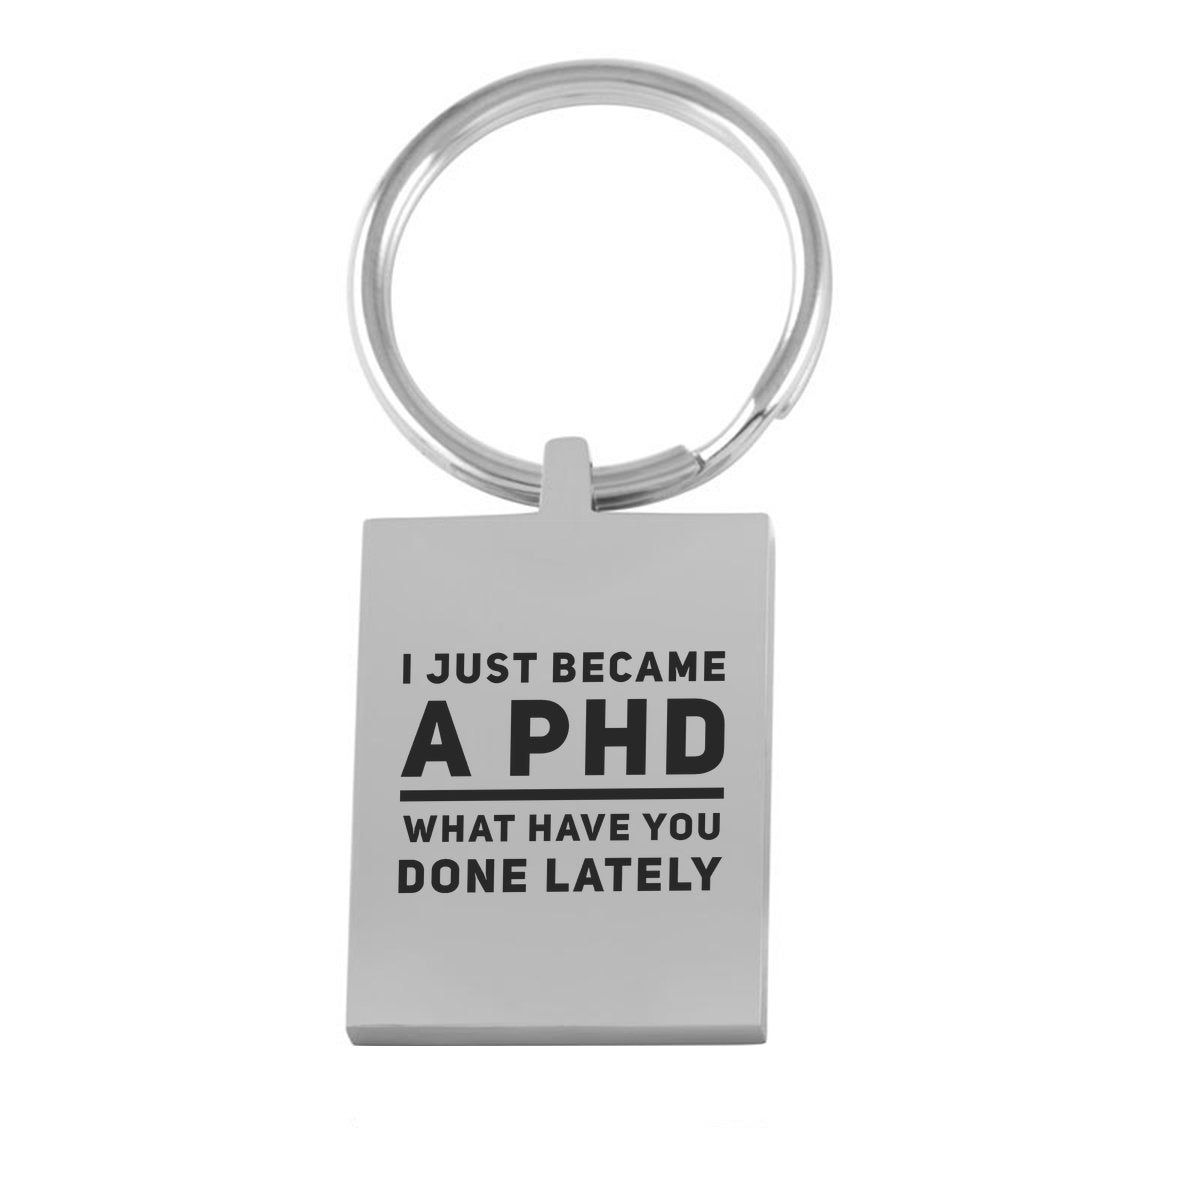 Graduation gifts for phds i just became a phd what have